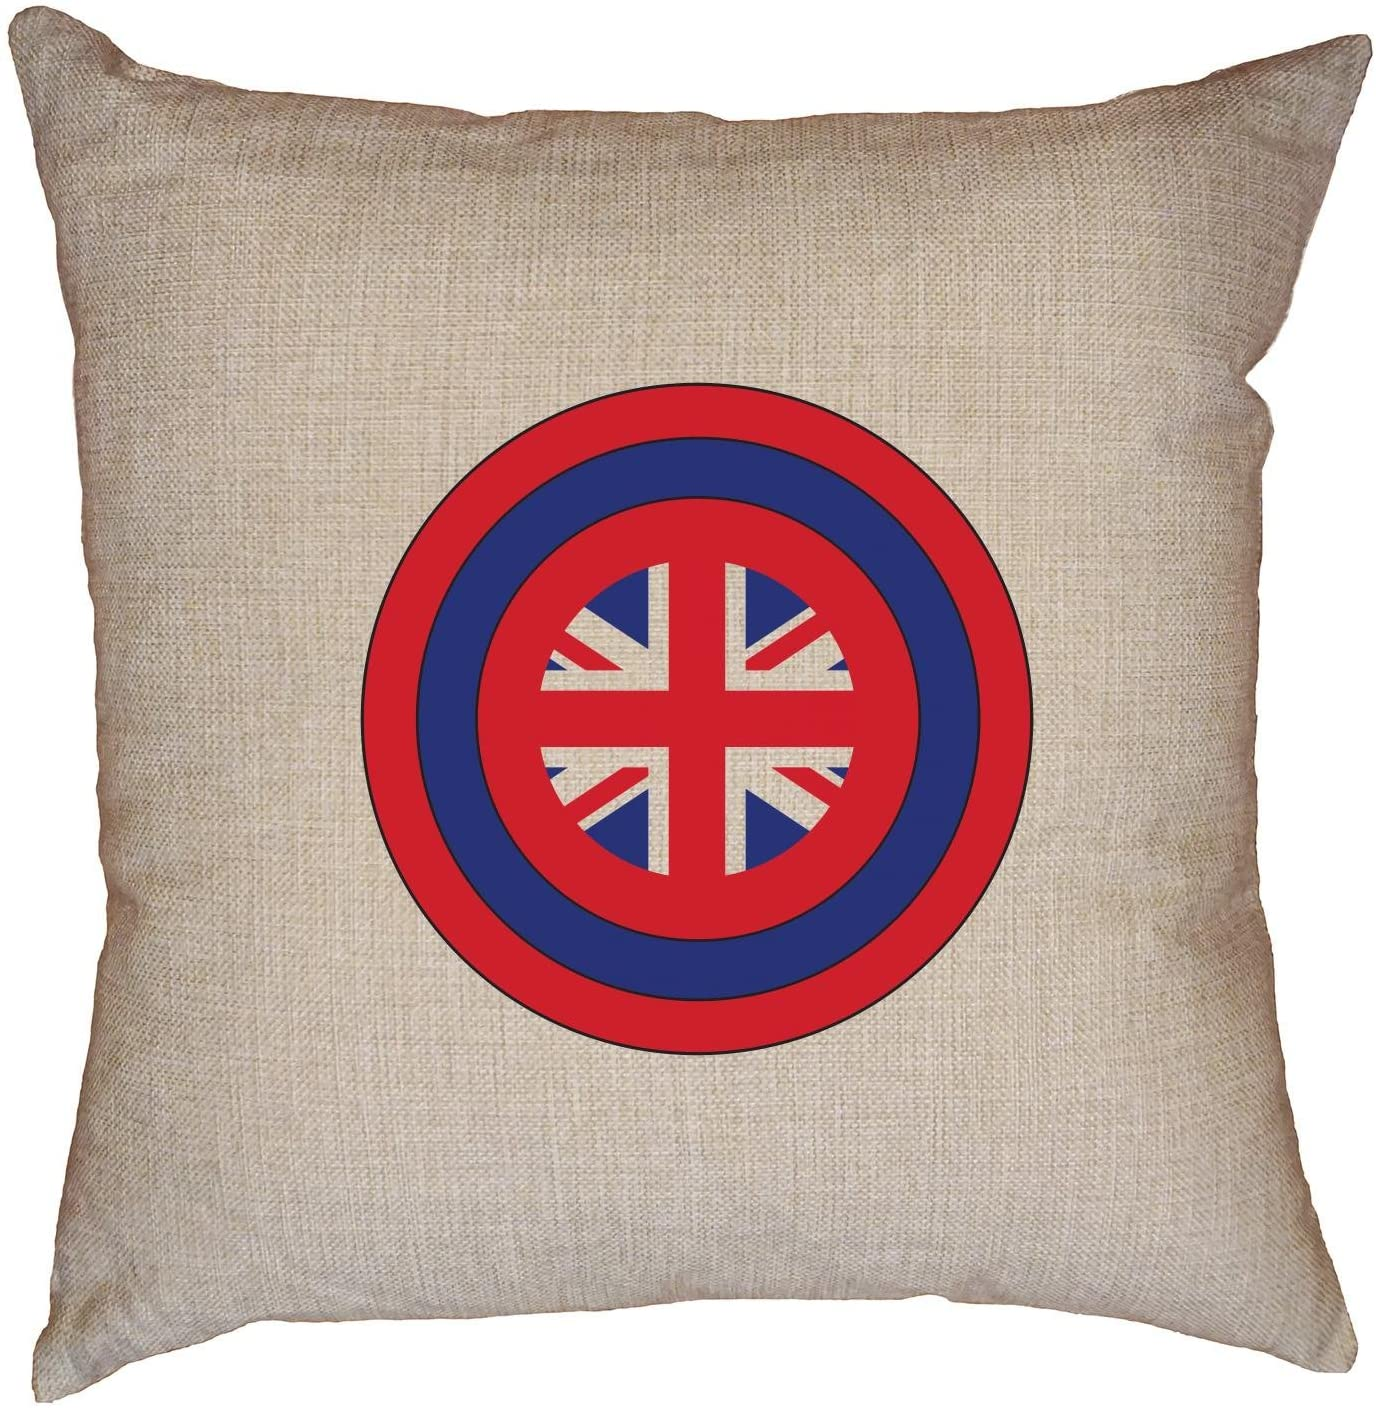 Cool Captain Great Britain Shield in America Decorative Linen Throw Cushion Pillow Case with Insert